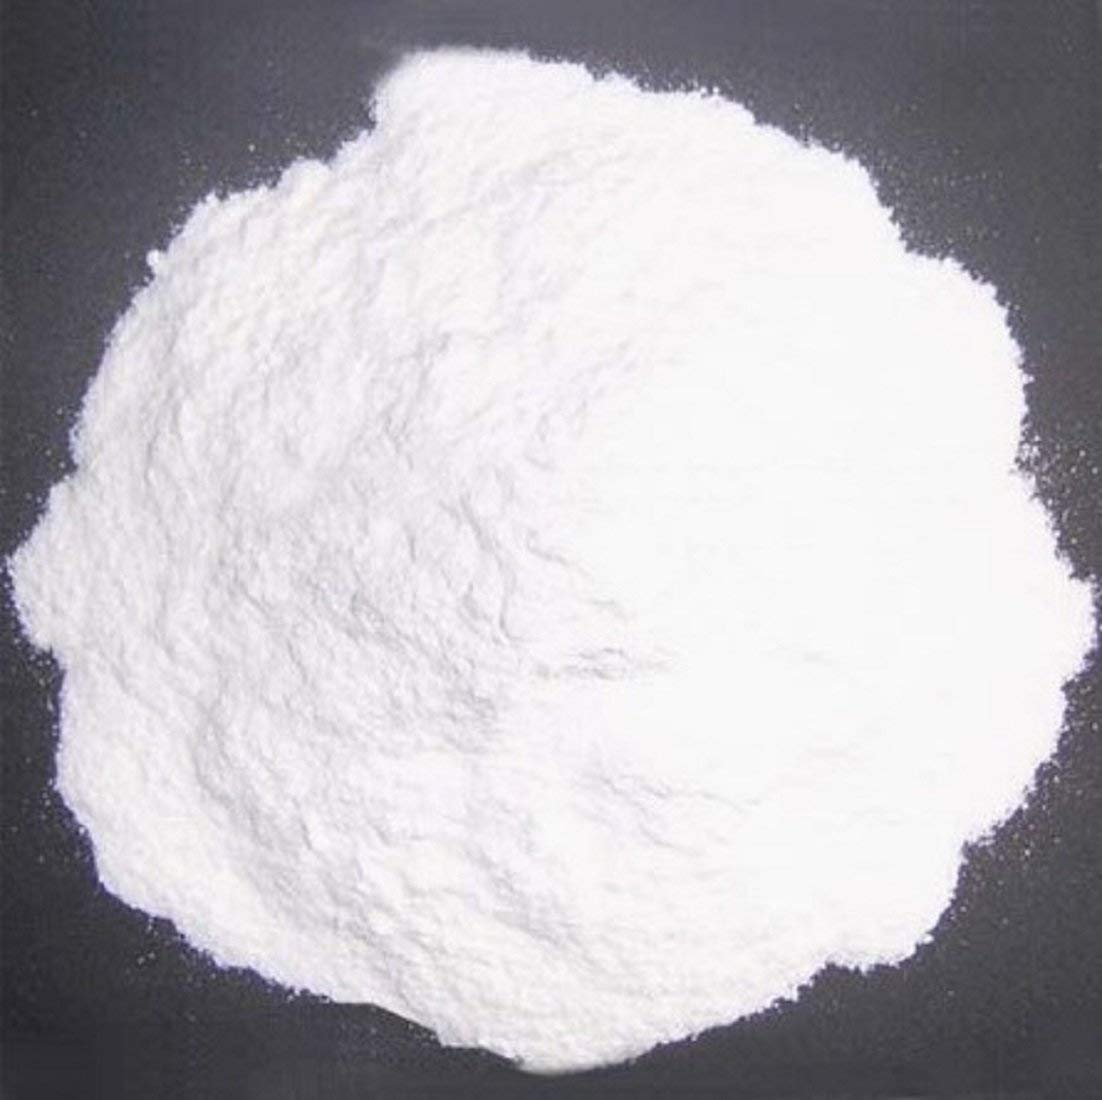 Calcium Chloride Powder